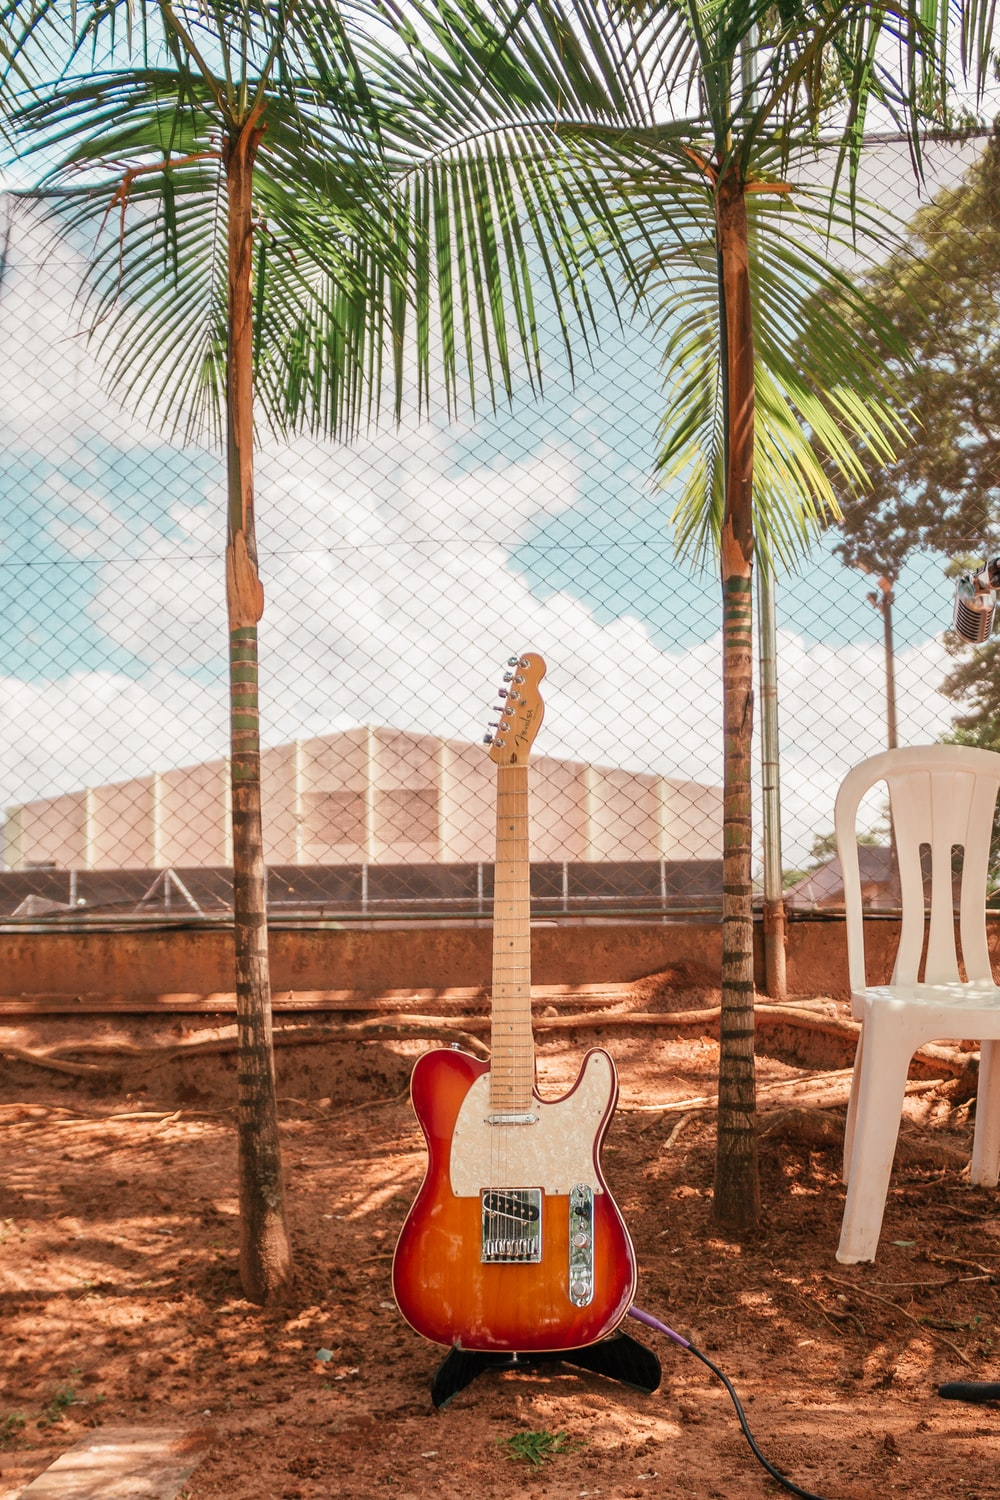 brown and white electric guitar near monobloc chair and trees during daytime